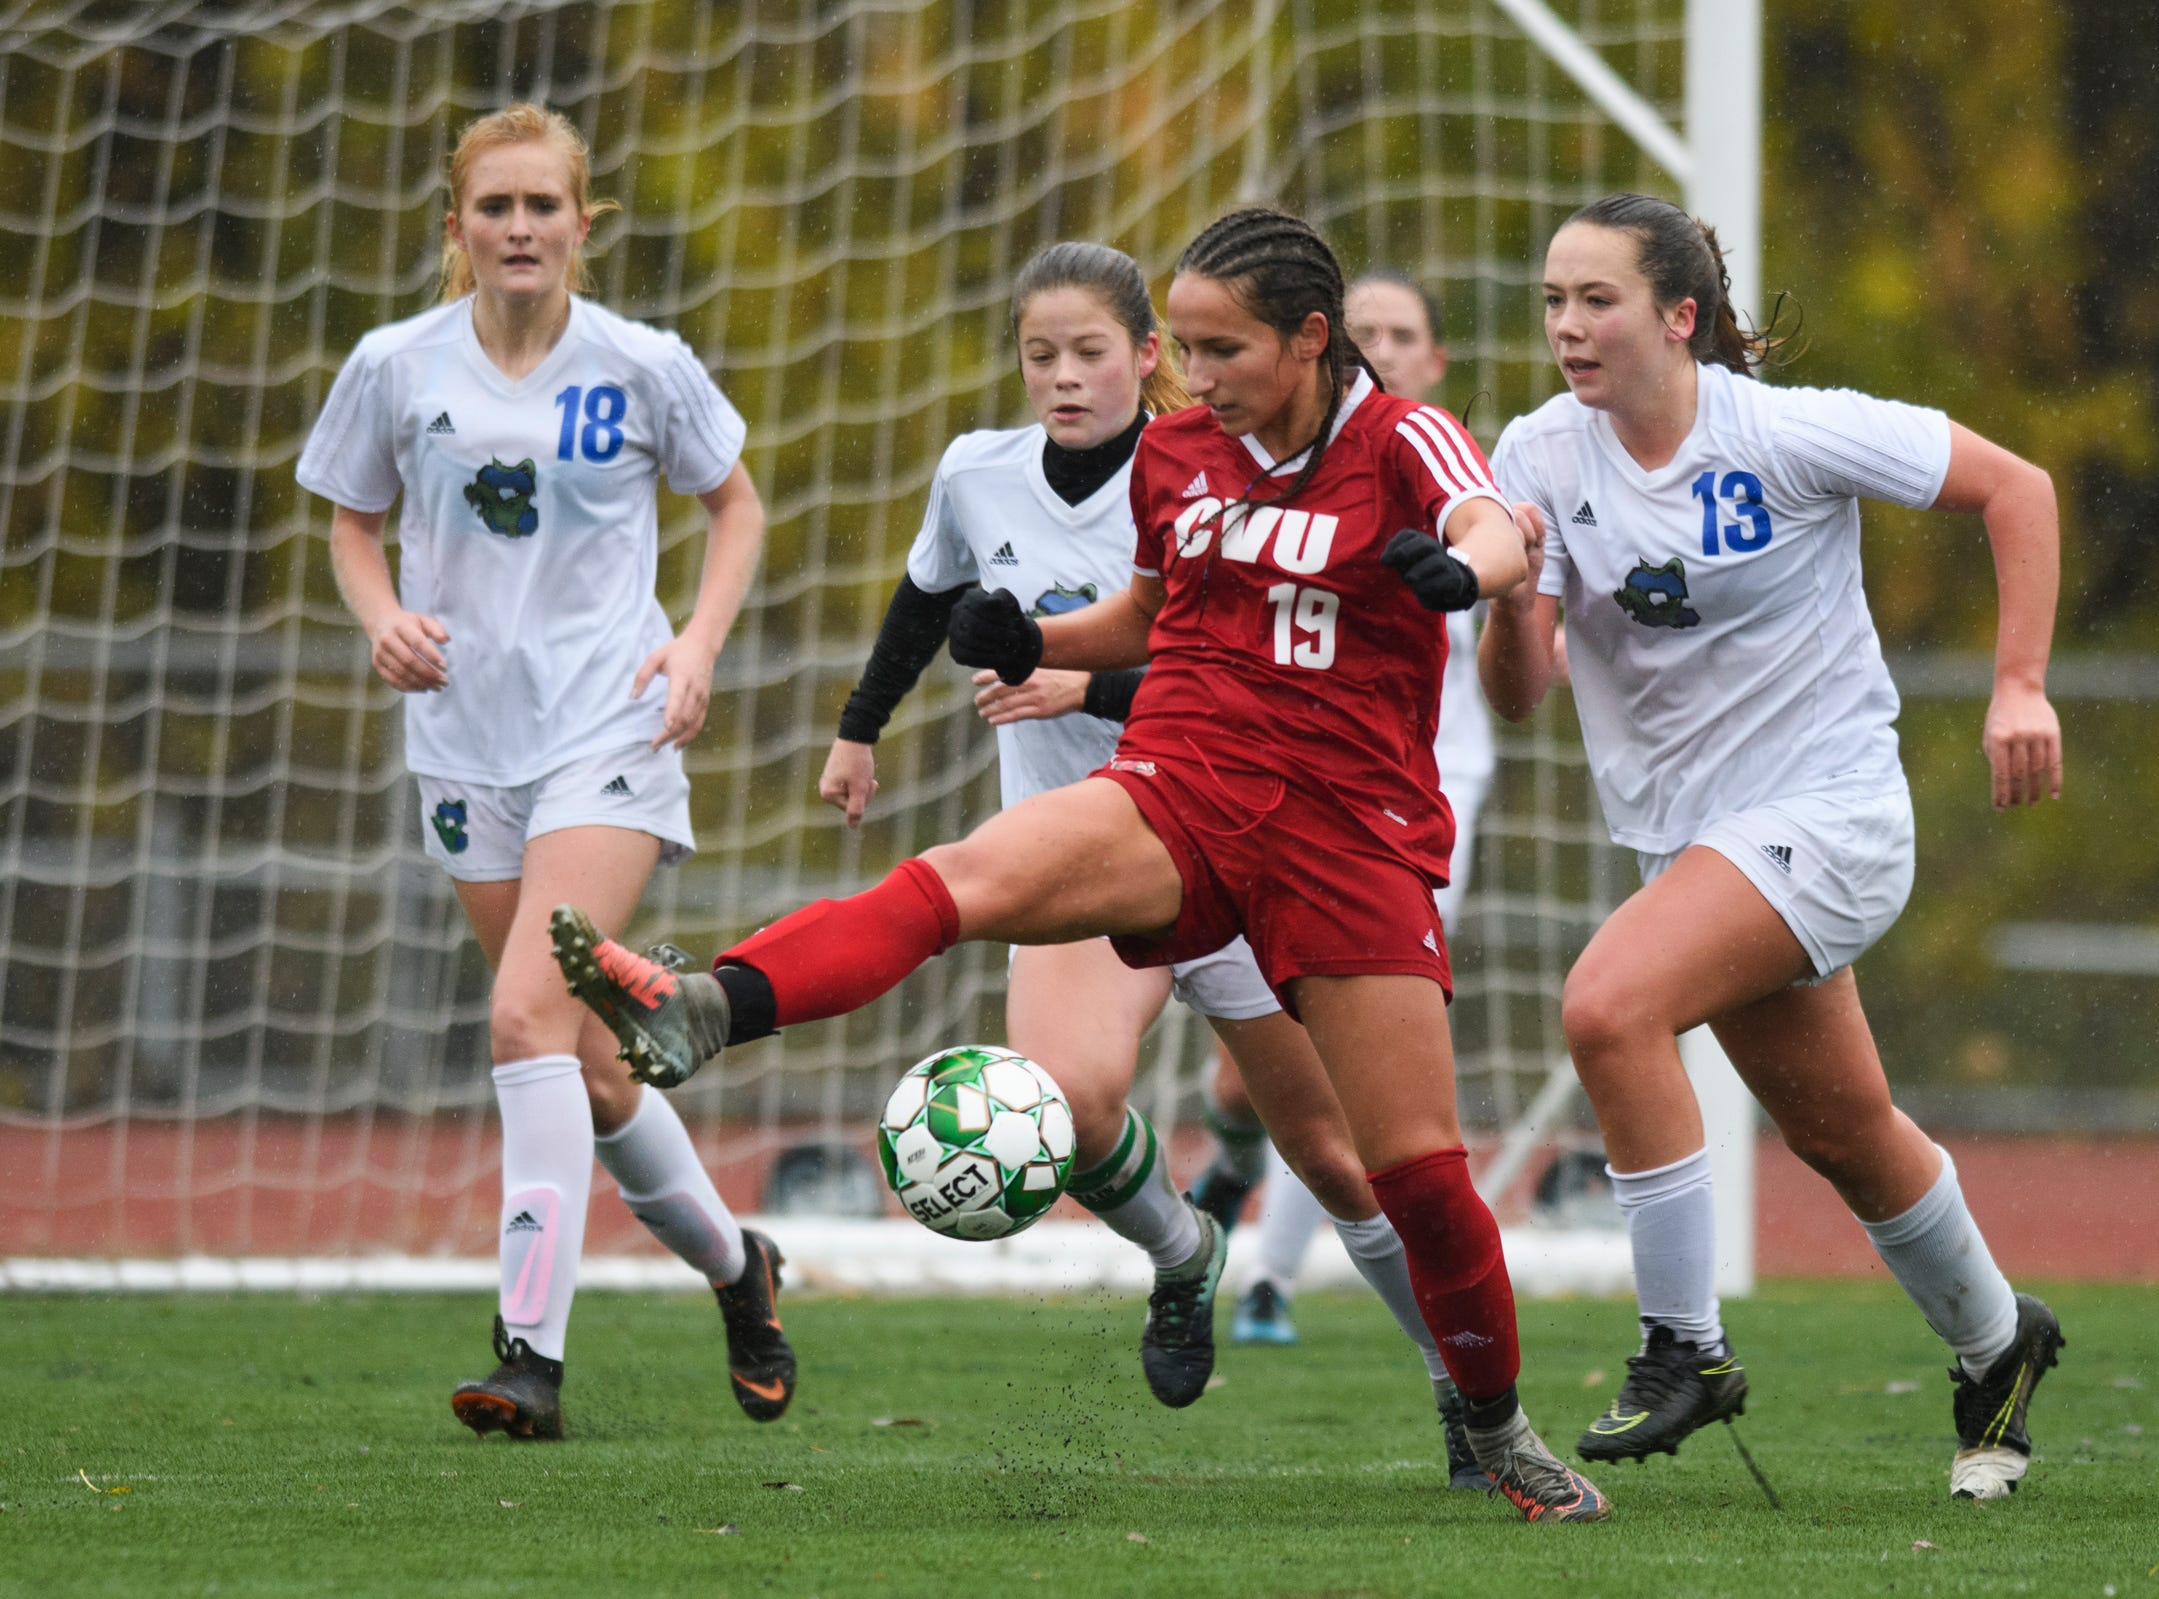 CVU's Sara Kelley (19) plays the ball in front of the net during the division I girls soccer championship game between the Colchester Lakers and the Champlain Valley Union Redhawks at Buck Hard Field on Saturday morning November 3, 2018 in Burlington.